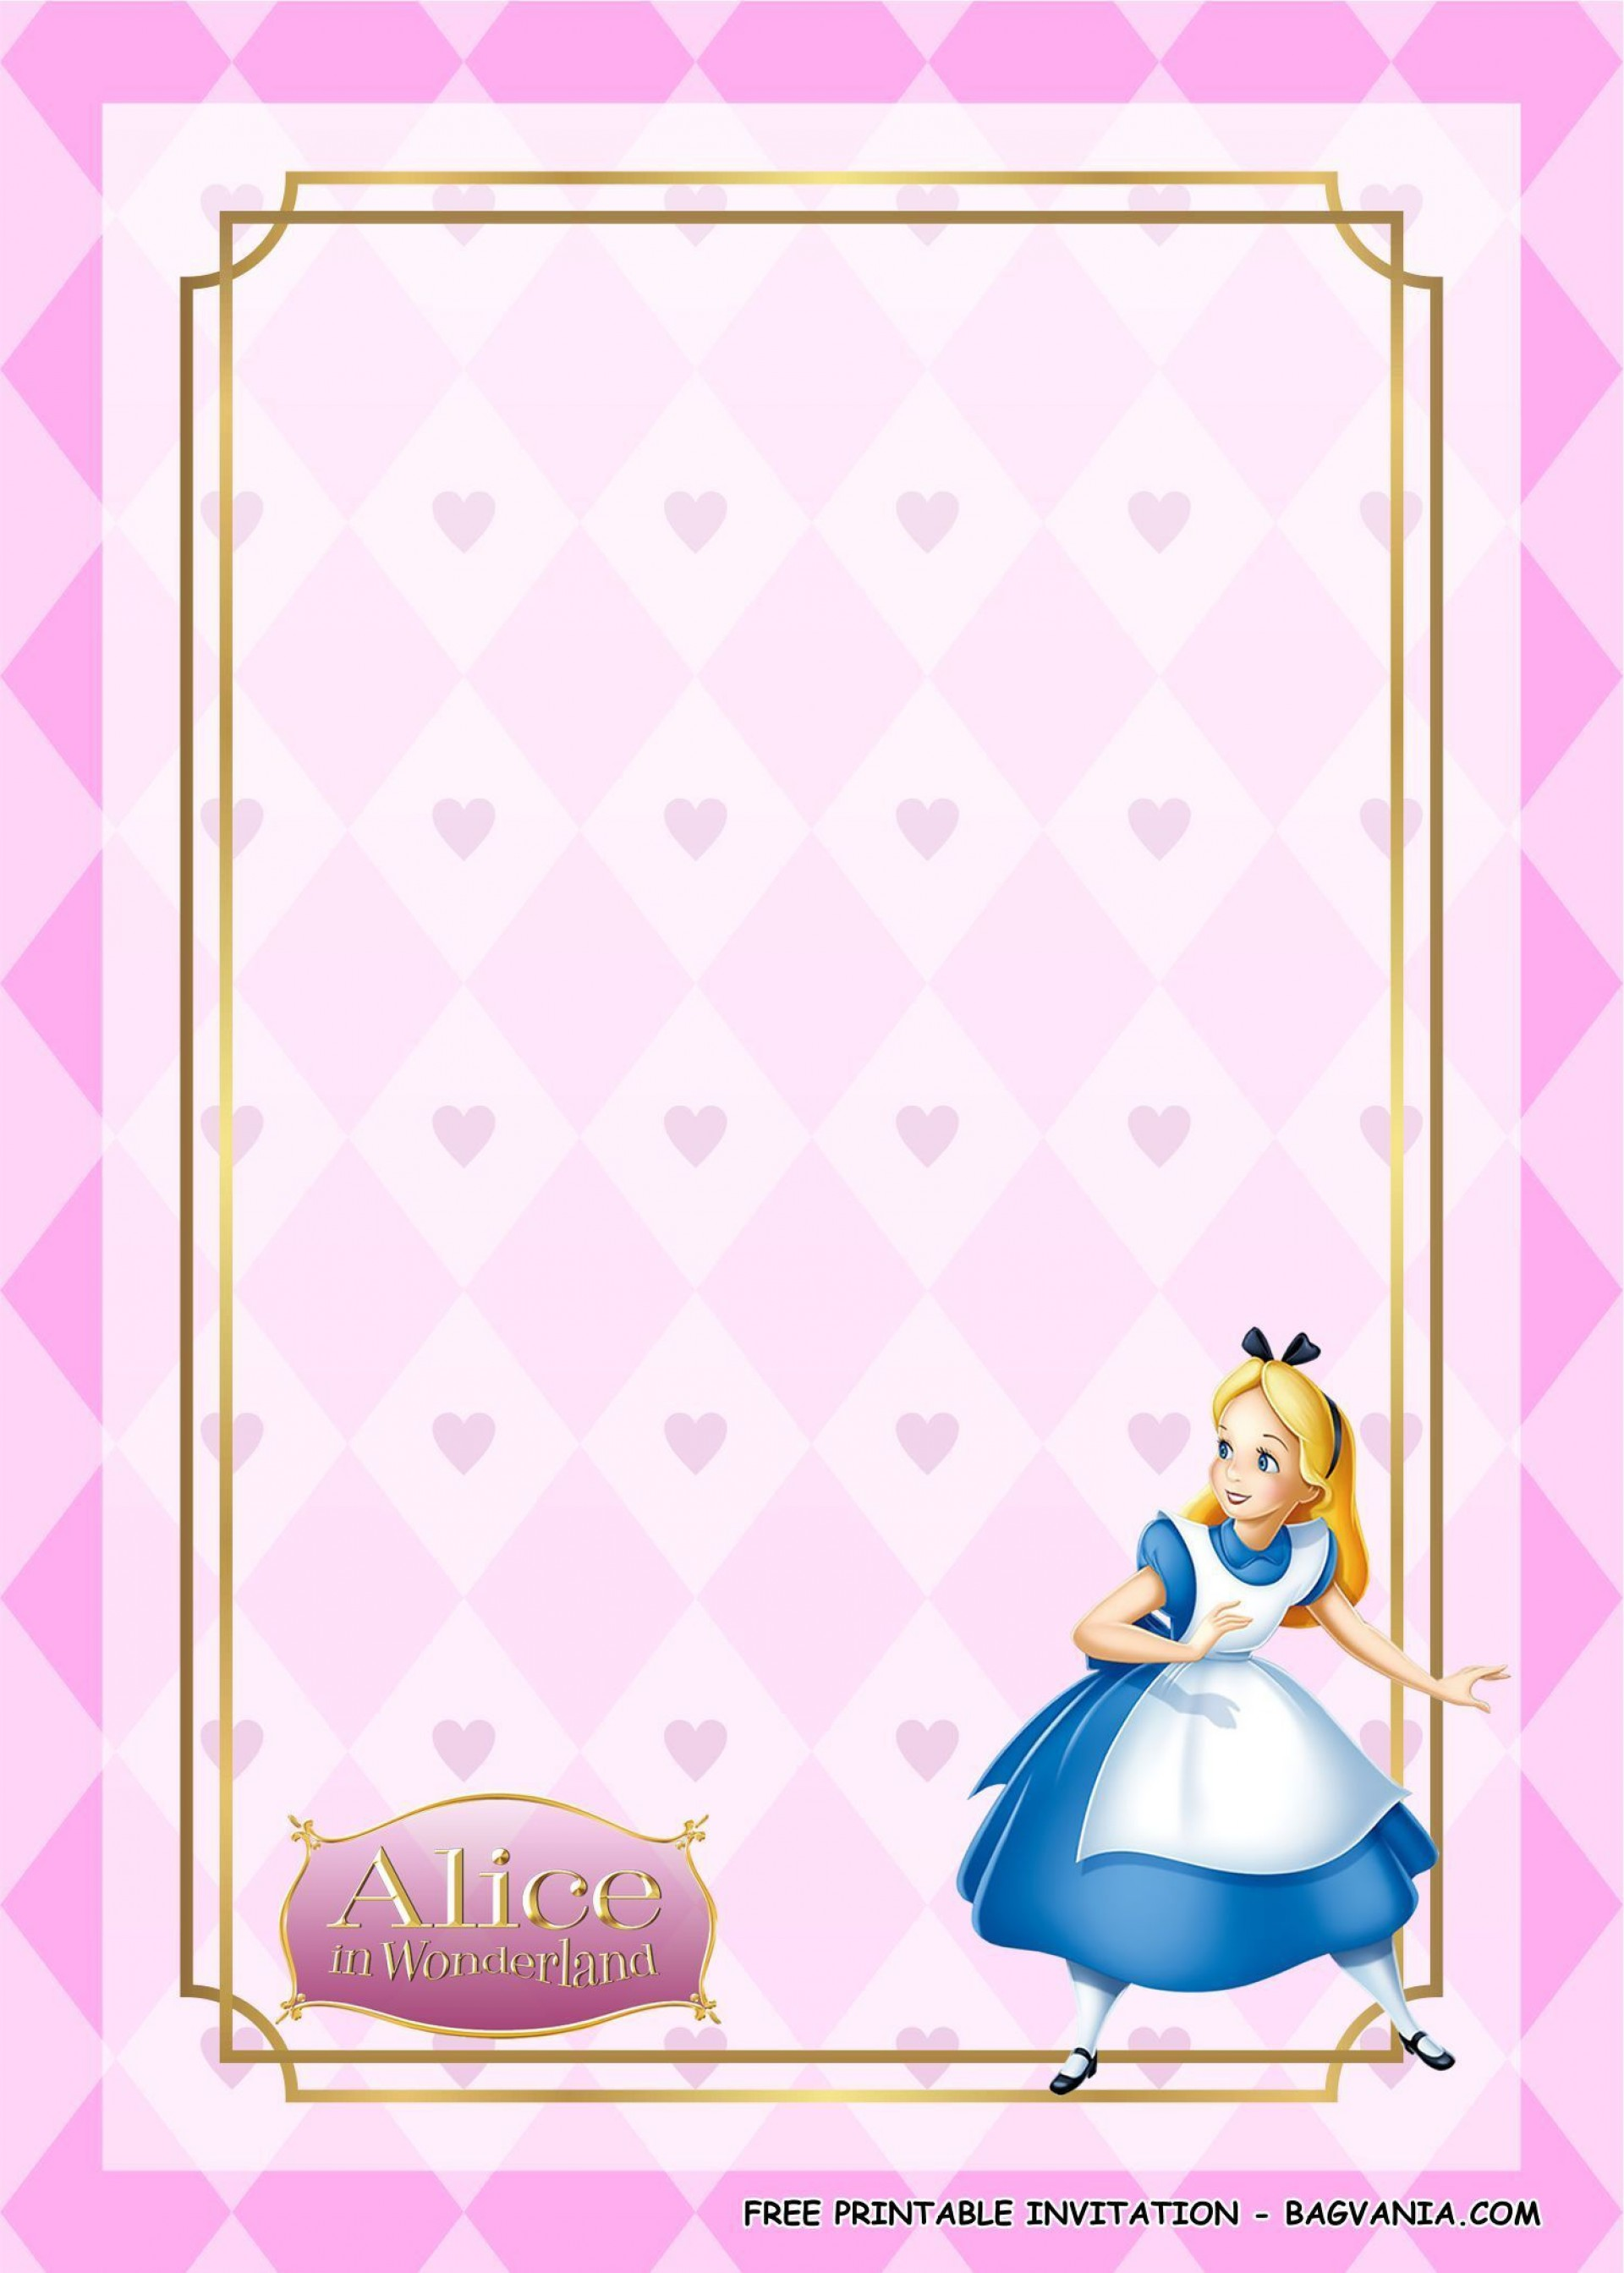 006 Remarkable Alice In Wonderland Party Template High Def  Templates Invitation Free1920